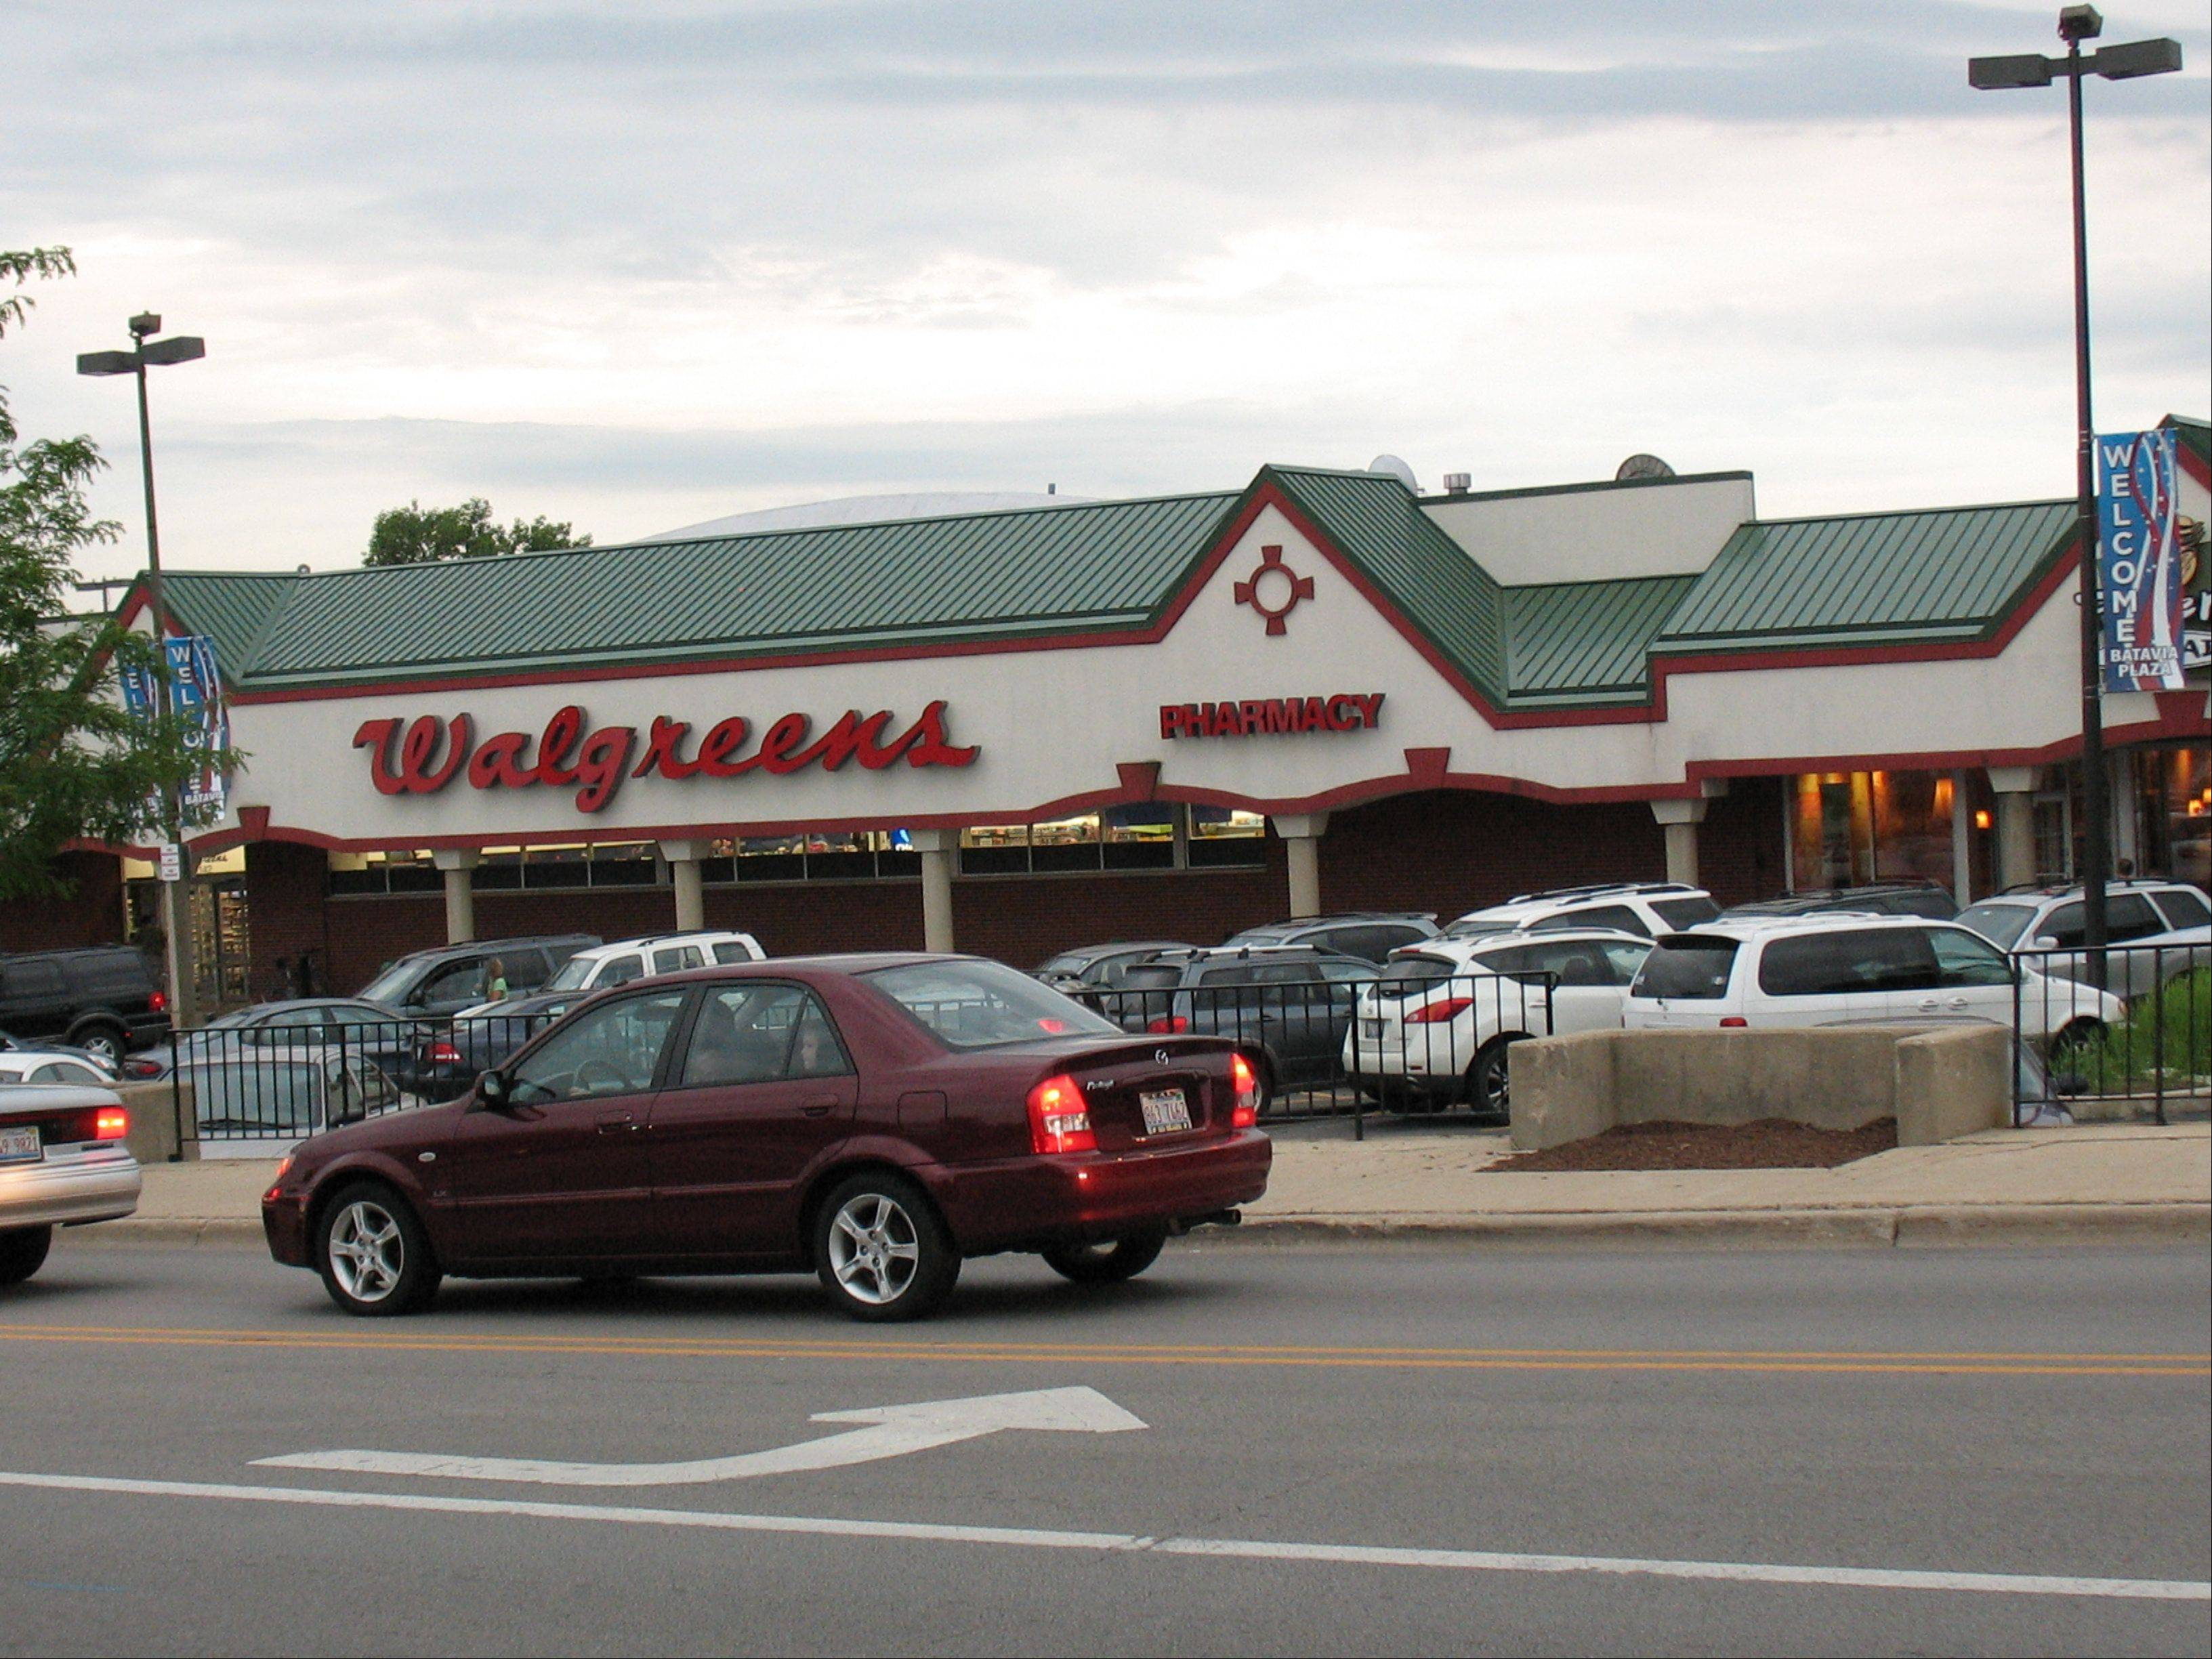 Walgreen Co.�s fourth quarter net income tumbled 55 percent compared with last year when a big gain inflated results for the nation�s largest drugstore chain.